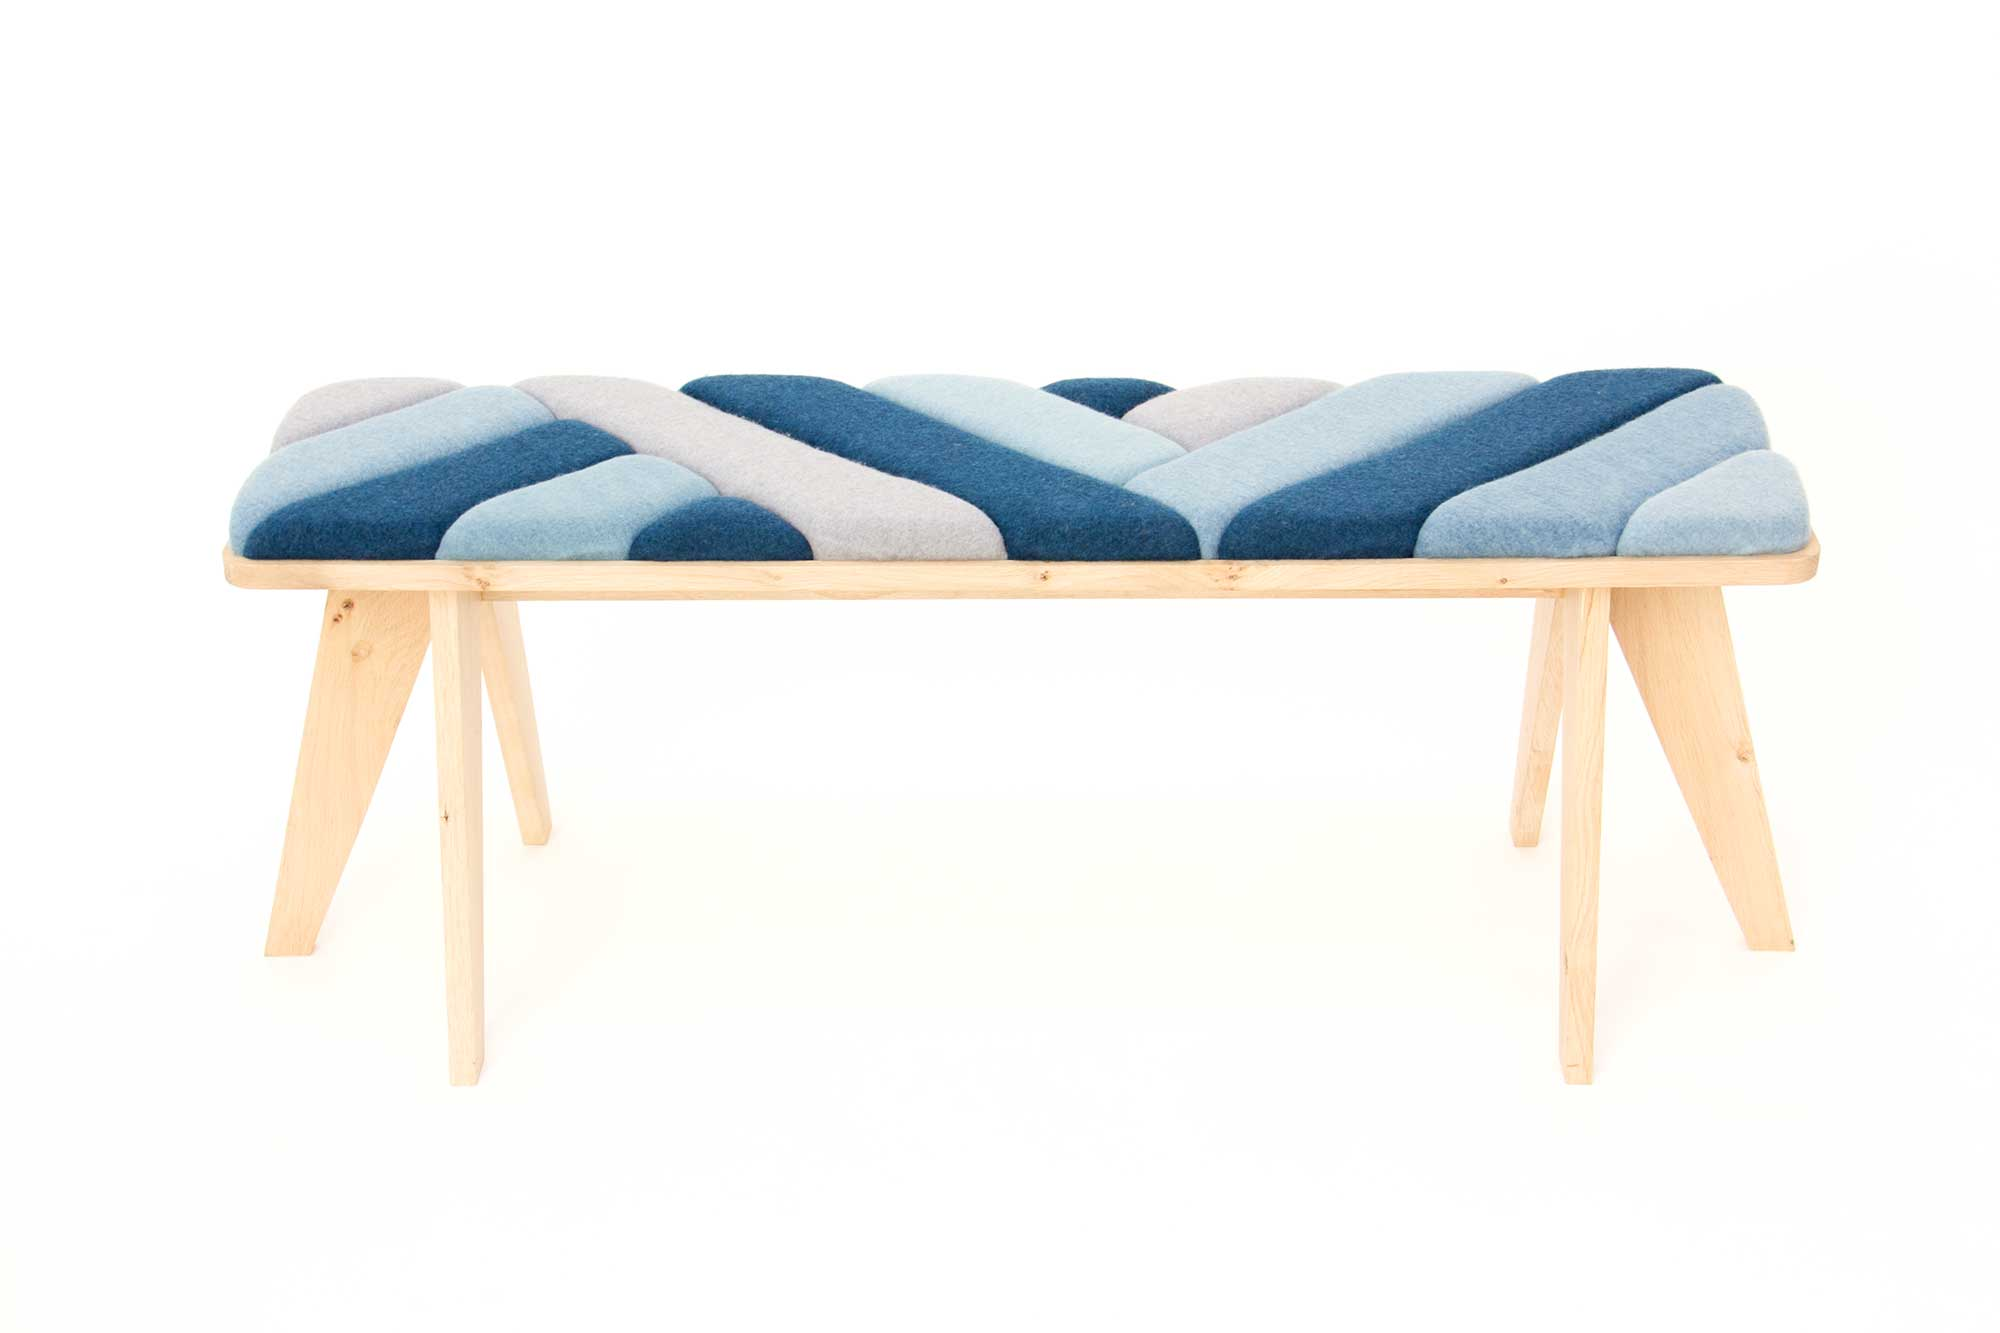 windbench-merel-karhof_indigo